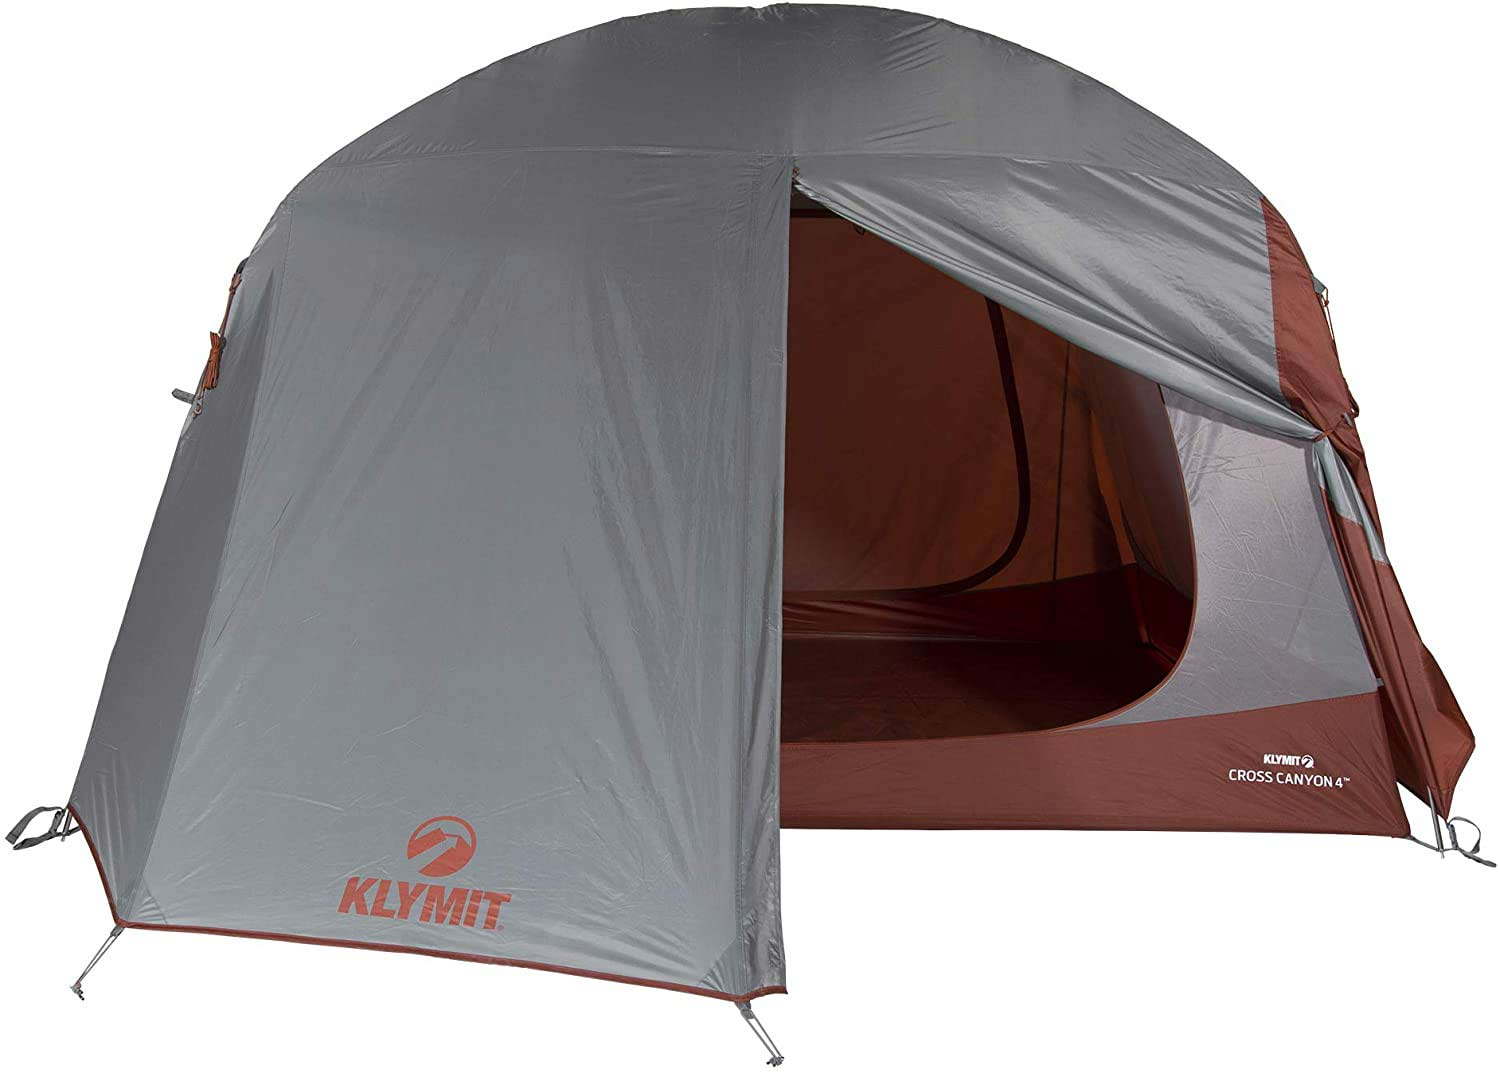 The Klymit Cross Canyon 4 Person Tent.